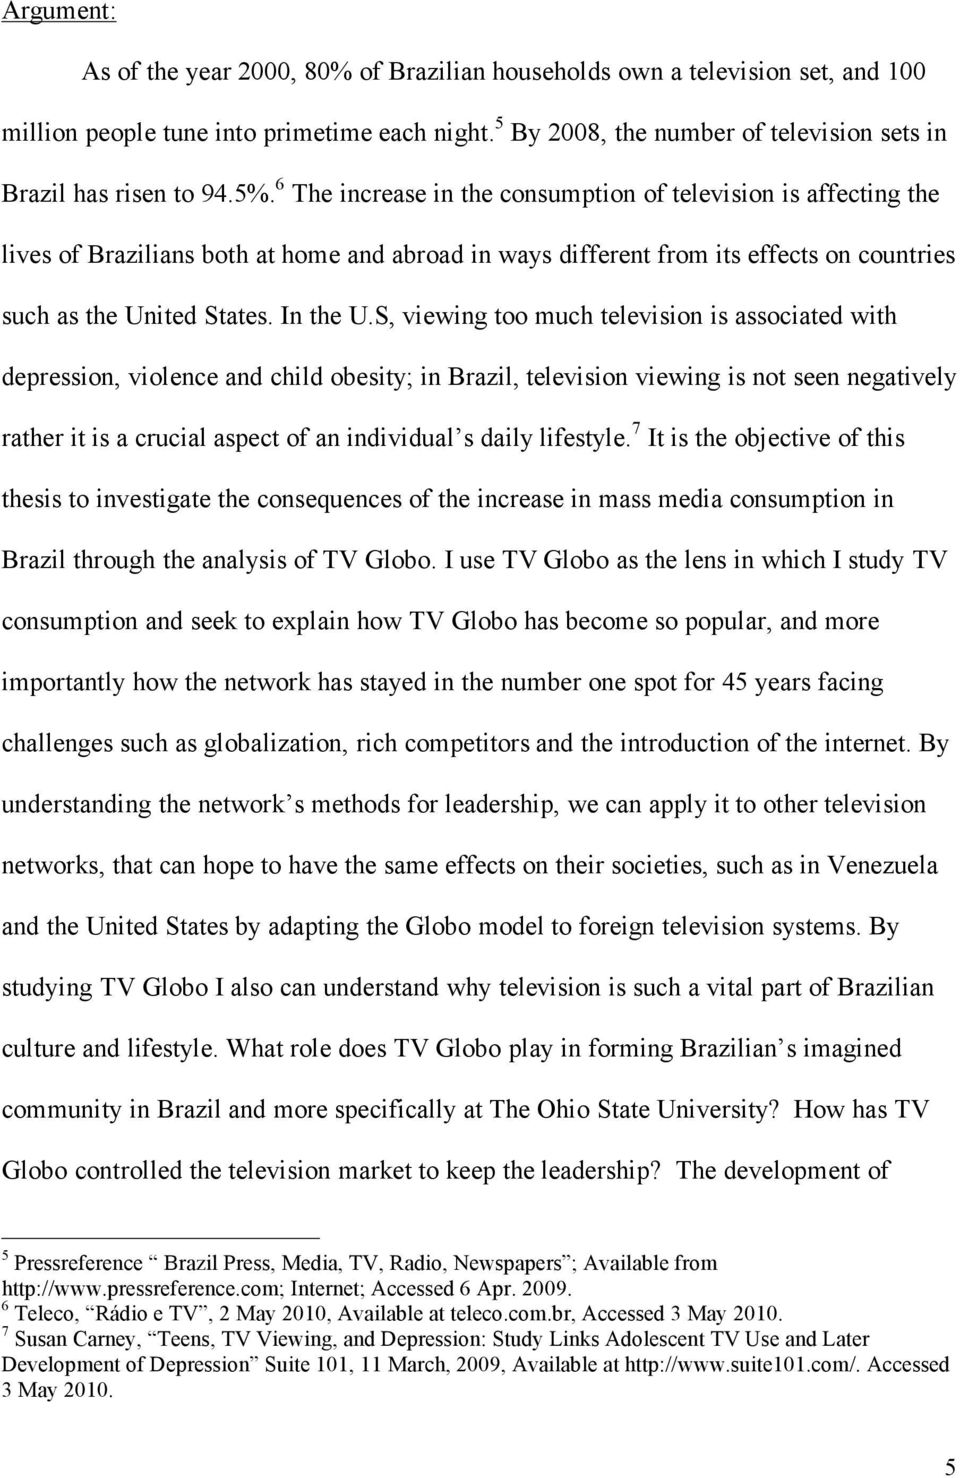 6 The increase in the consumption of television is affecting the lives of Brazilians both at home and abroad in ways different from its effects on countries such as the United States. In the U.